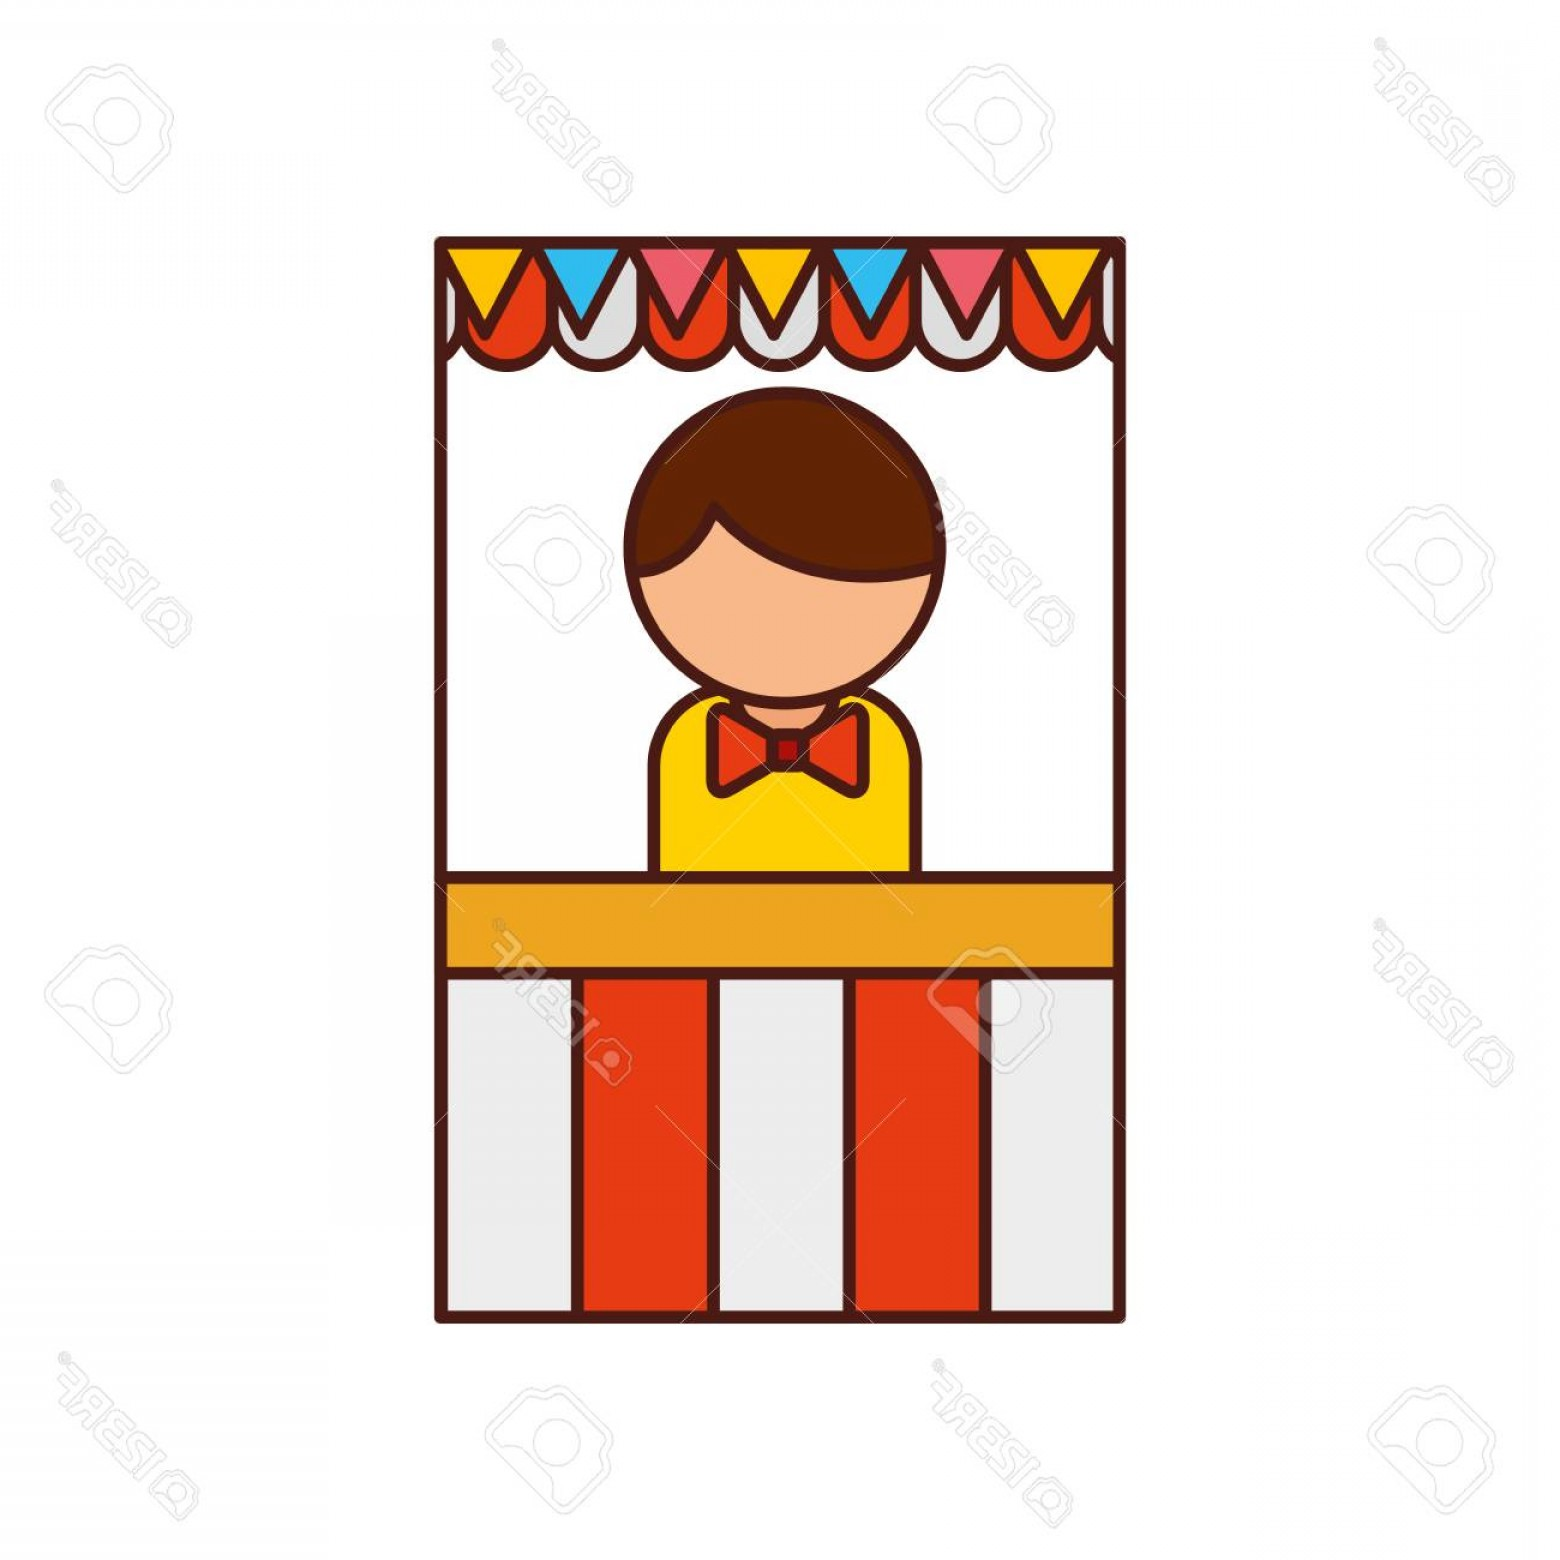 Salesman Vector: Photostock Vector Ticket Shop Carnival With Salesman Vector Illustration Design